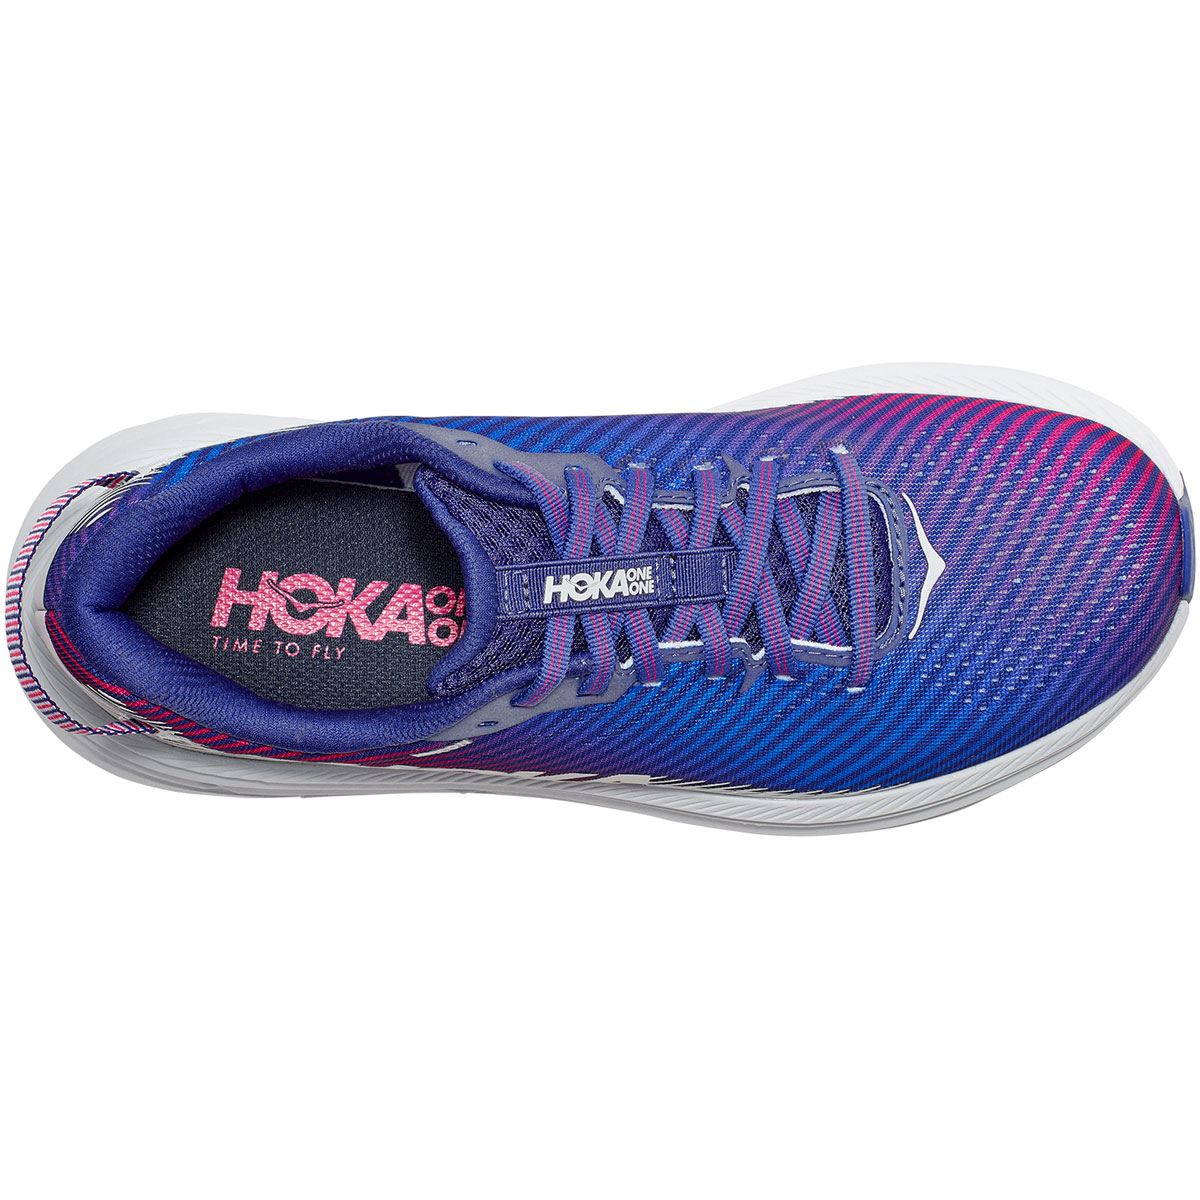 Women's Hoka One One Rincon 2 Running Shoe - Color: Clematis Blue - Size: 5 - Width: Regular, Clematis Blue, large, image 2